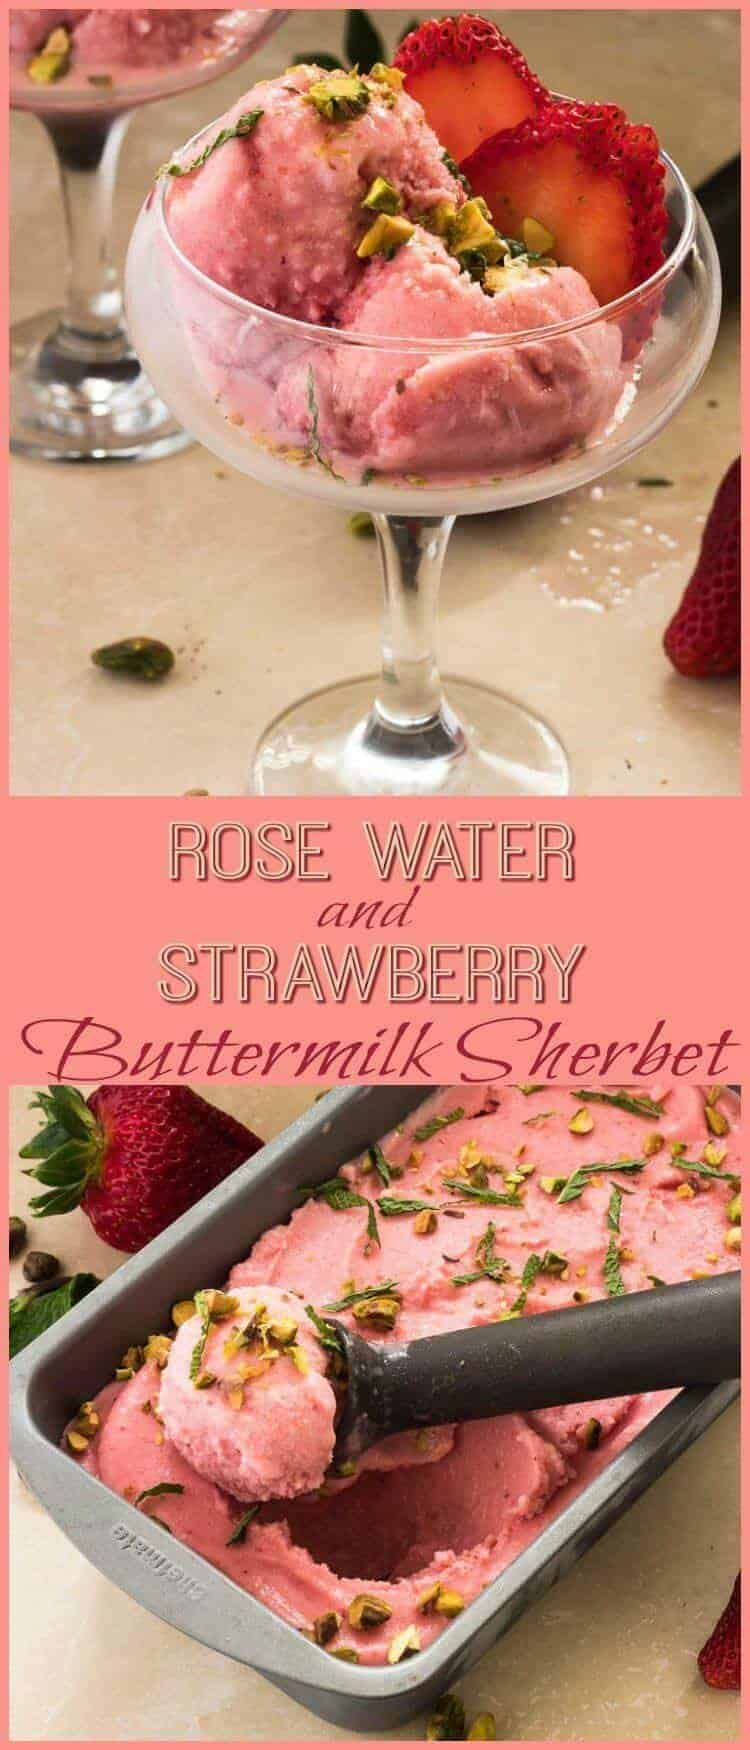 Strawberry and Rose Water Buttermilk Sherbet - A light, fruity frozen treat with just a hint of exotic rose water. Rose Water and Strawberry Buttermilk Sherbet gets its tang and body from buttermilk... A perfectly lovely chilly dessert on a hot summer's day! frozen desserts | sherbet recipe | buttermilk sherbet | rose water sherbet